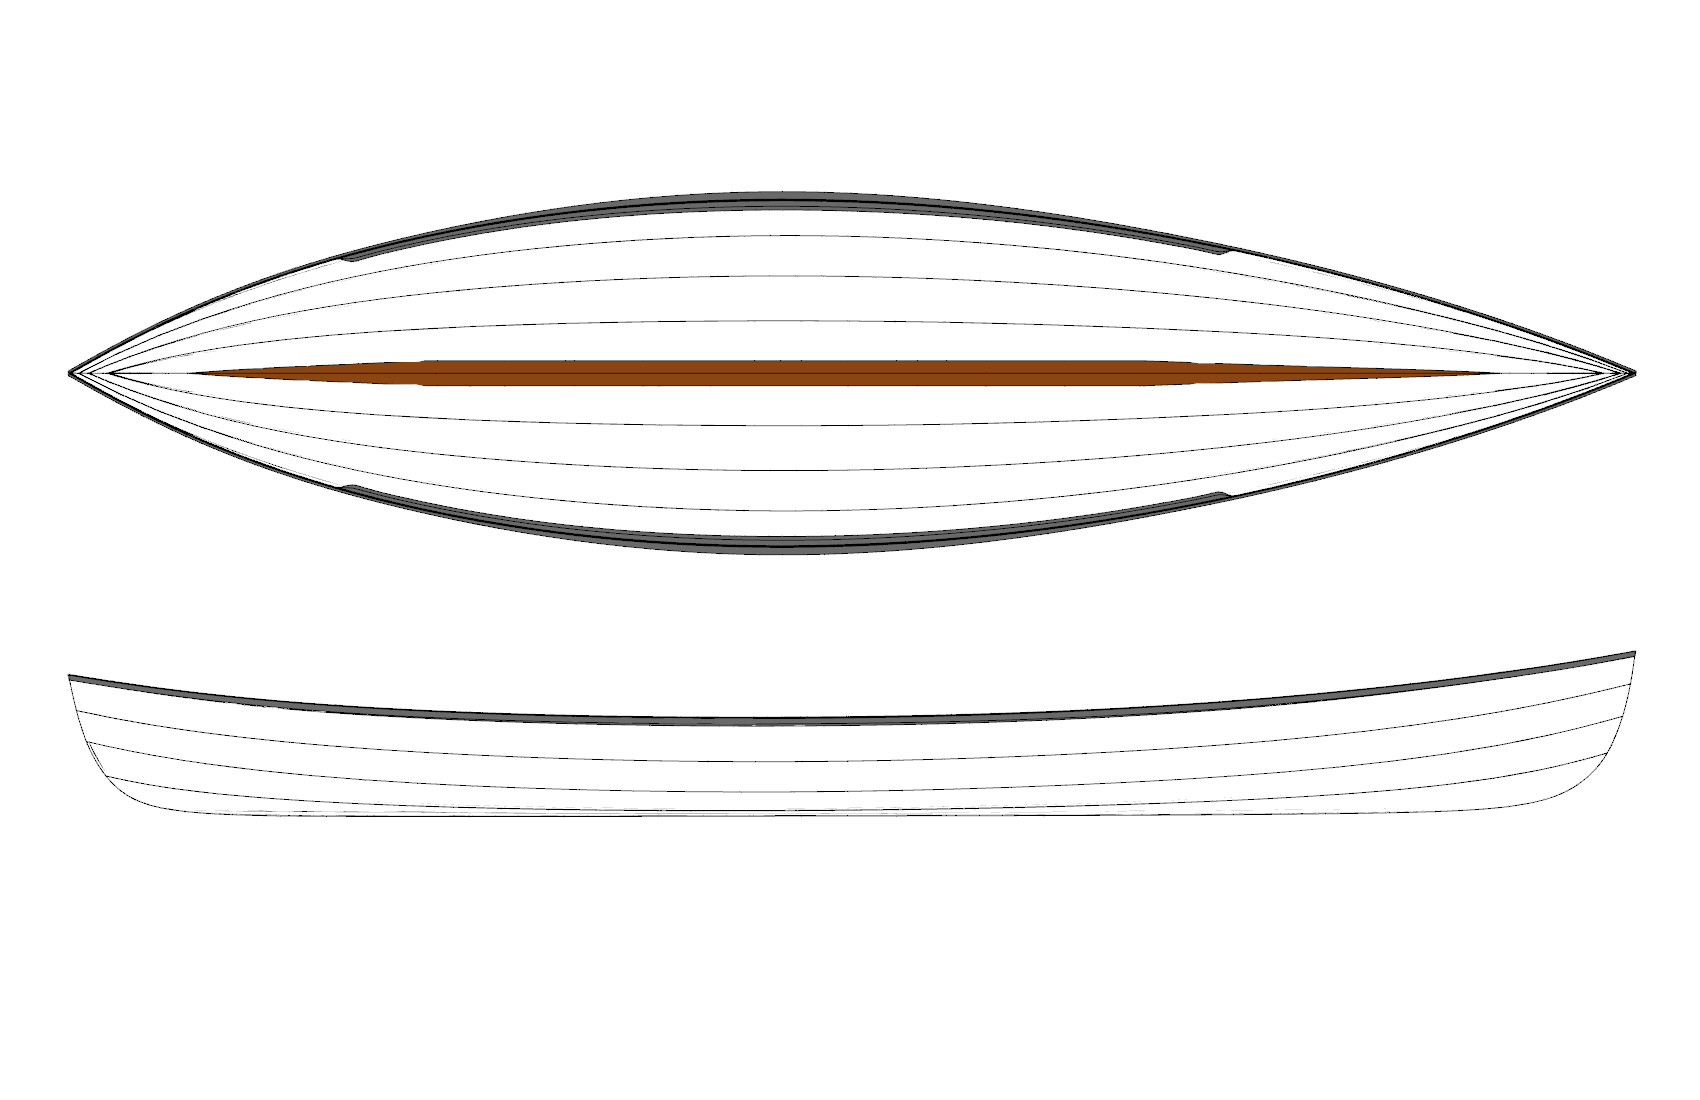 DRB HULL PLAN & PROFILE   The plan view shape shows the designed fine entry and fullness aft which allows for the greater speeds in race conditions. The brown strip is a inner keel. The gray gunwales show the wide outer rails which put the oarlocks further outboard.